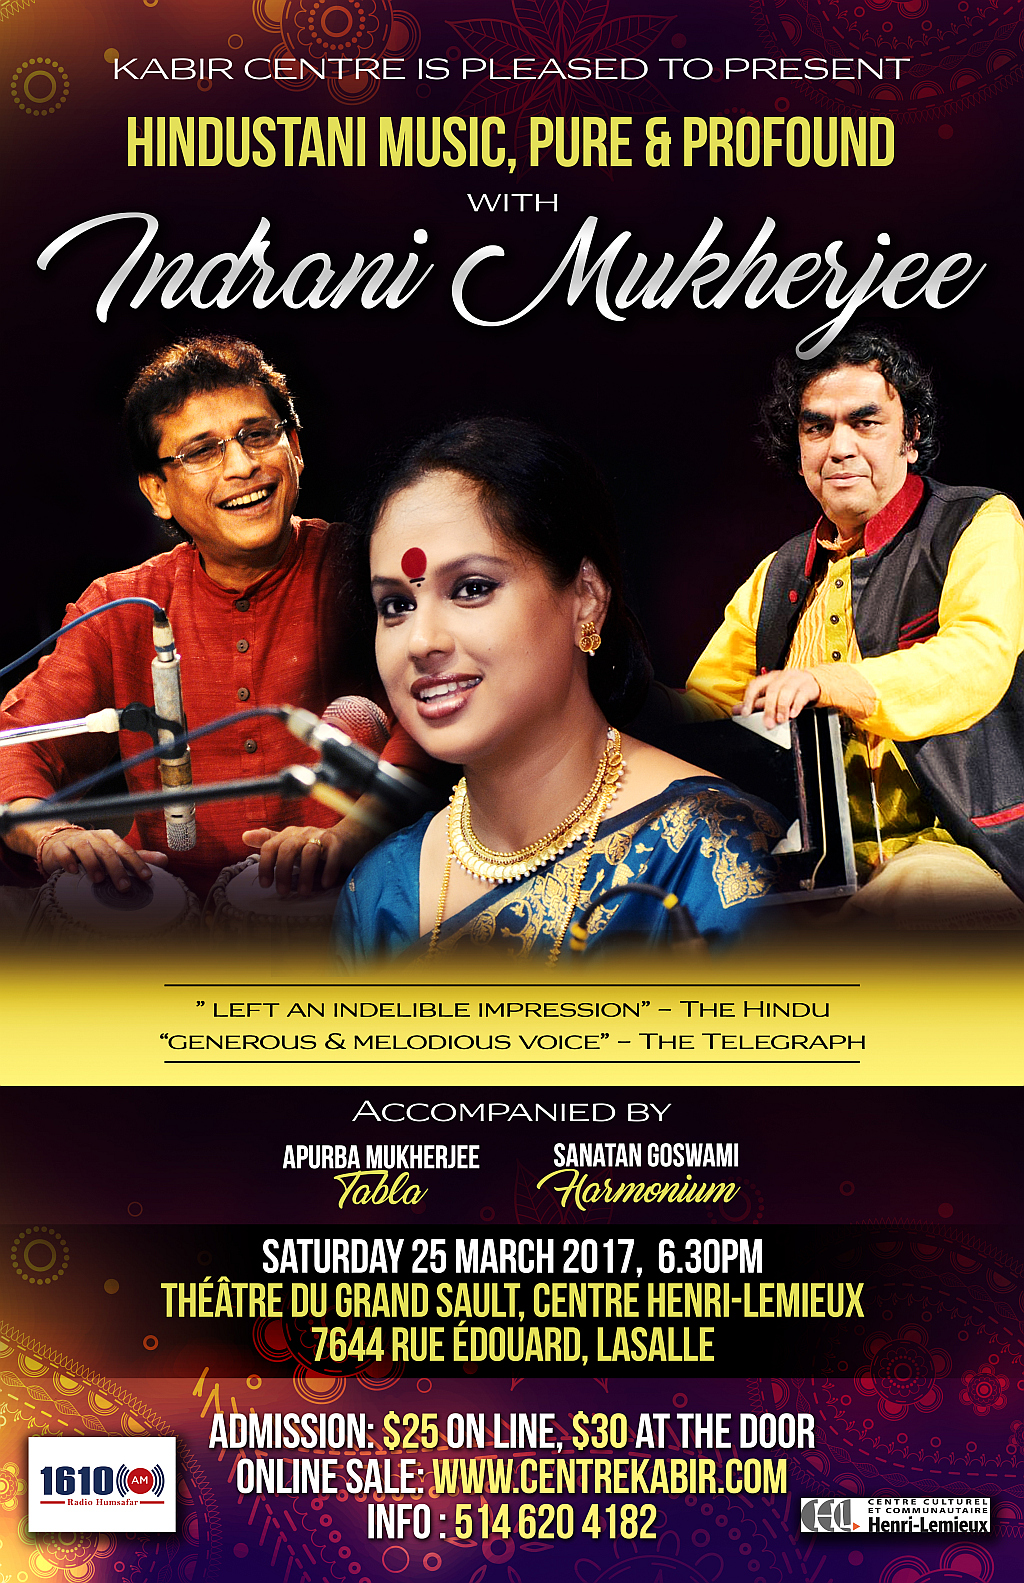 Hindustani Music, Pure & Profound, with Indrani Mukherjee on March 25, 2017